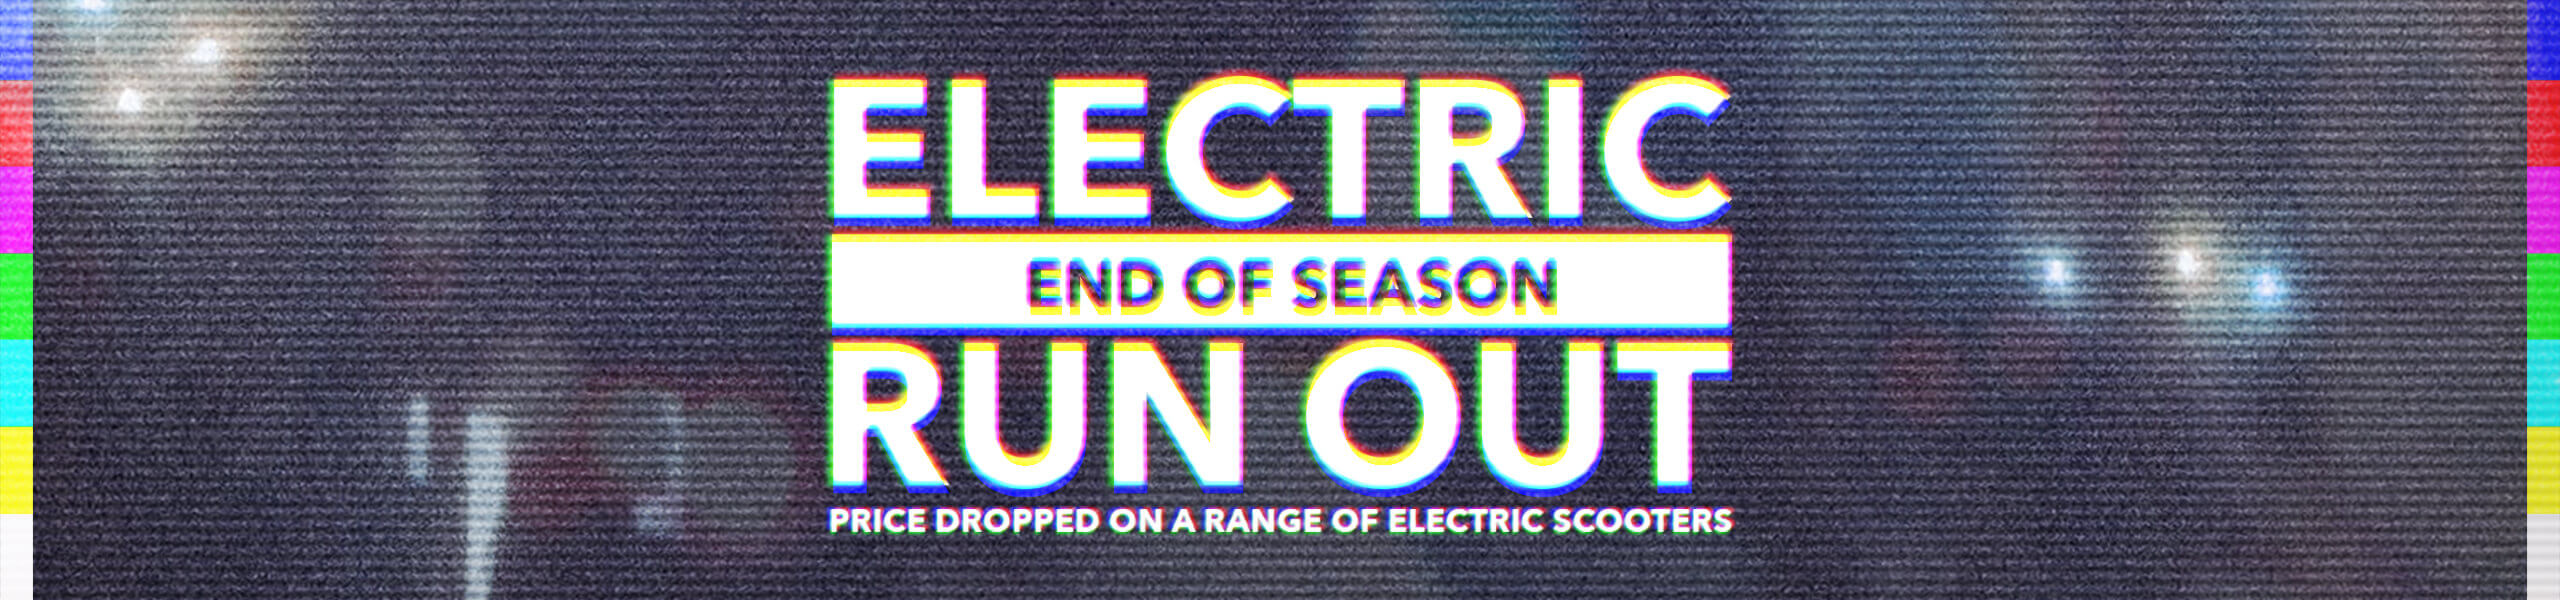 Electric Scooters Reduced